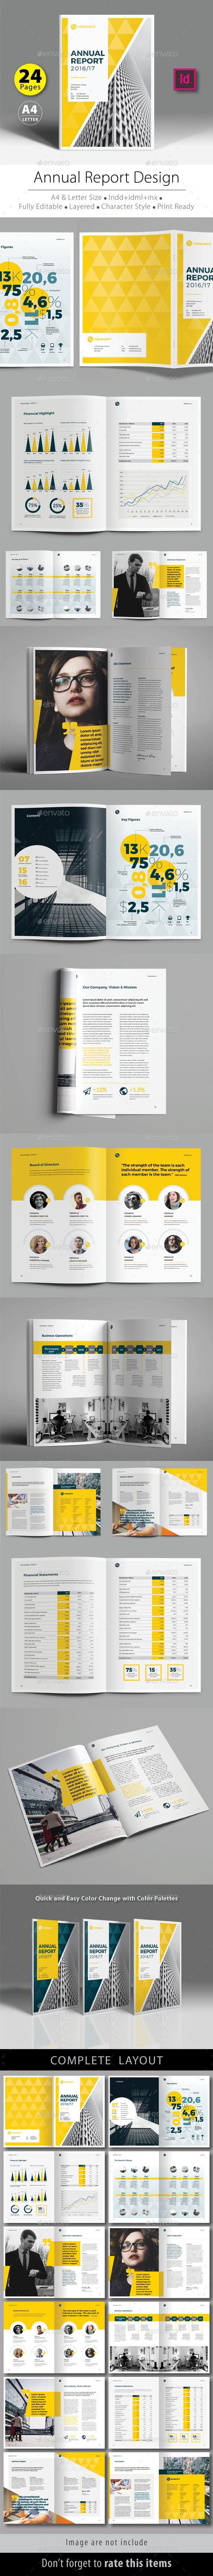 Annual Report #Design Template V.6 - #Corporate #Brochures Download here: https://graphicriver.net/item/annual-report-design-template-v6/19716881?ref=alena994